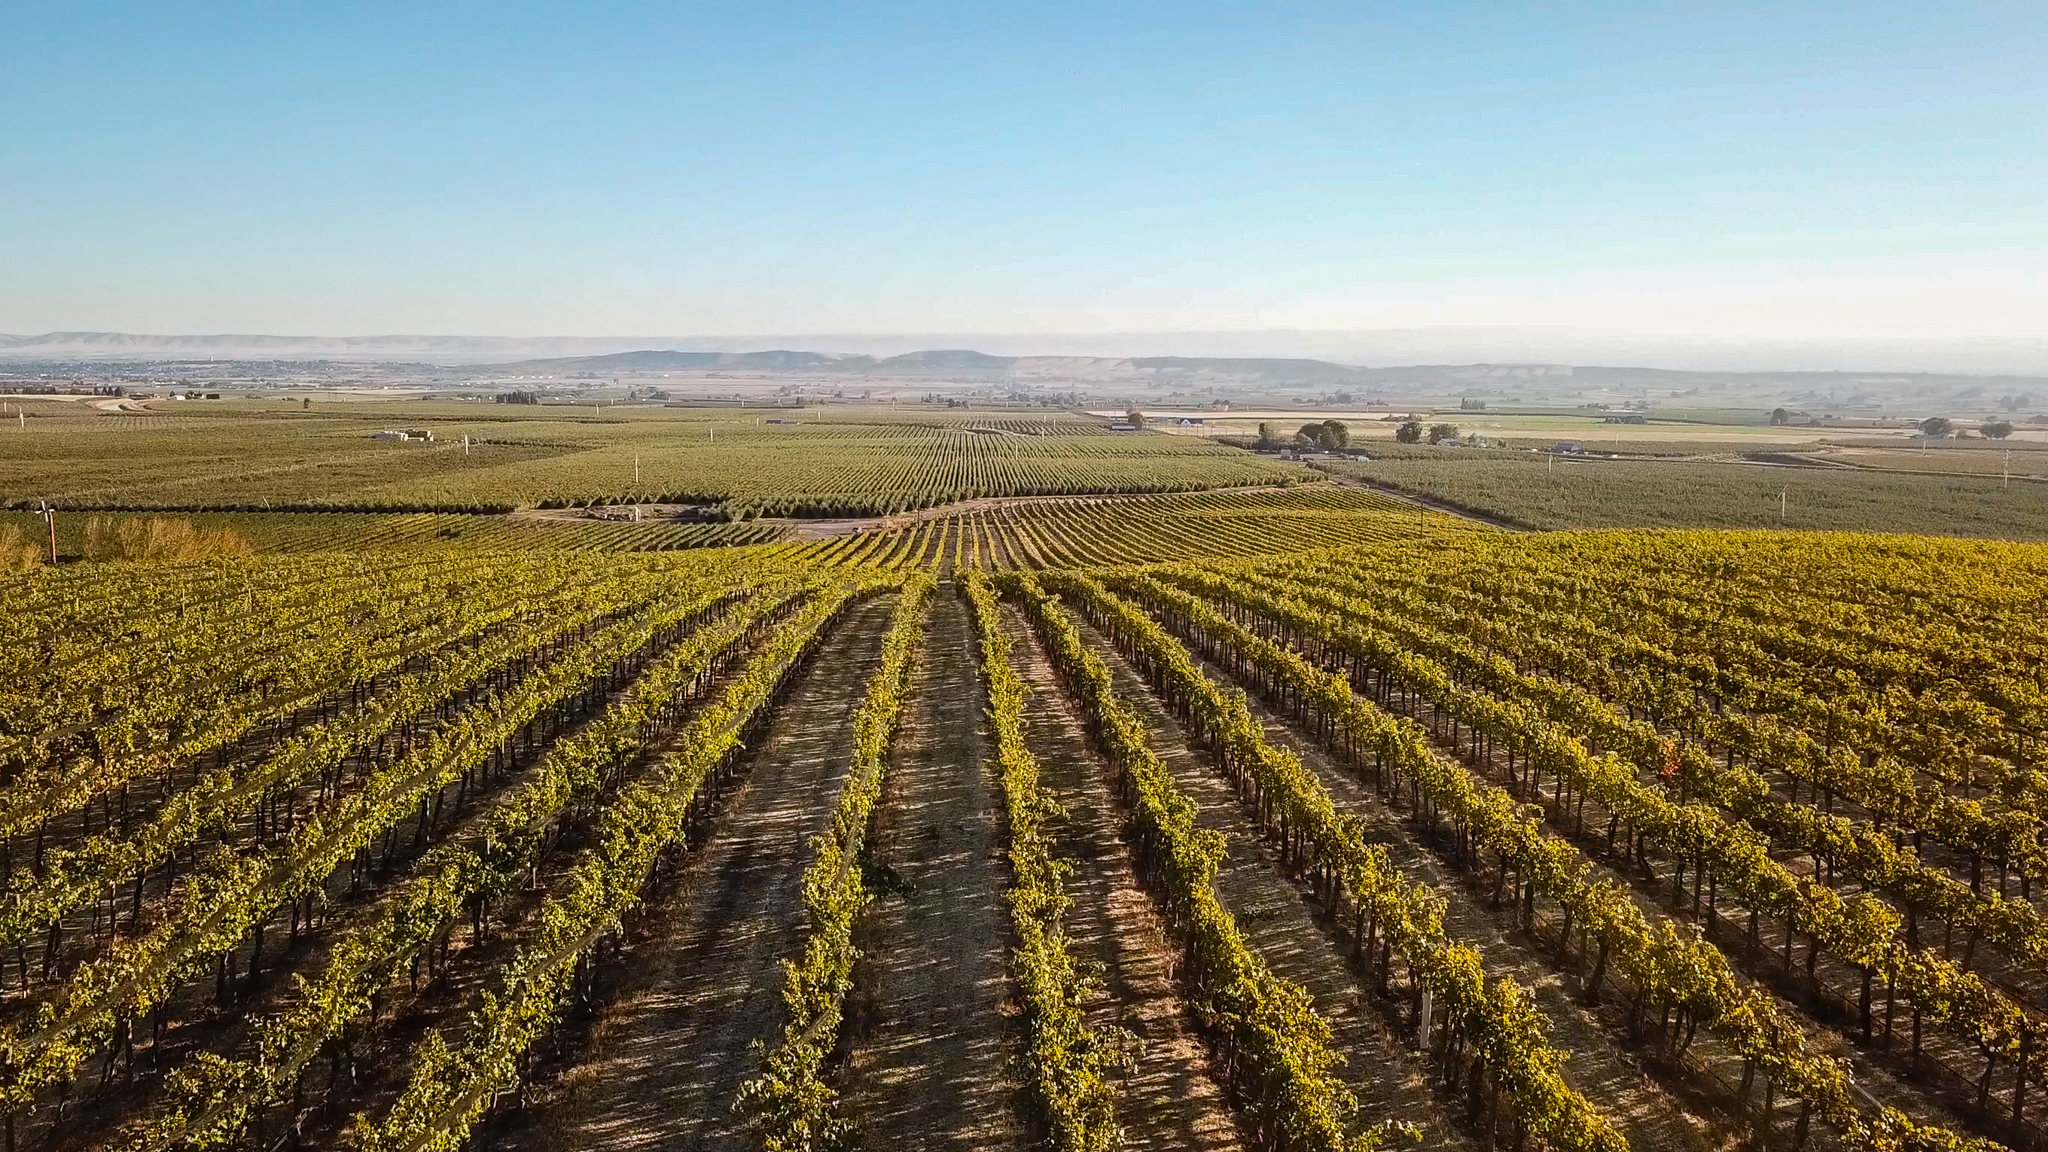 Rows of green vines stetch toward the hills in the horizon. The sky is hazy white-grey to blue.